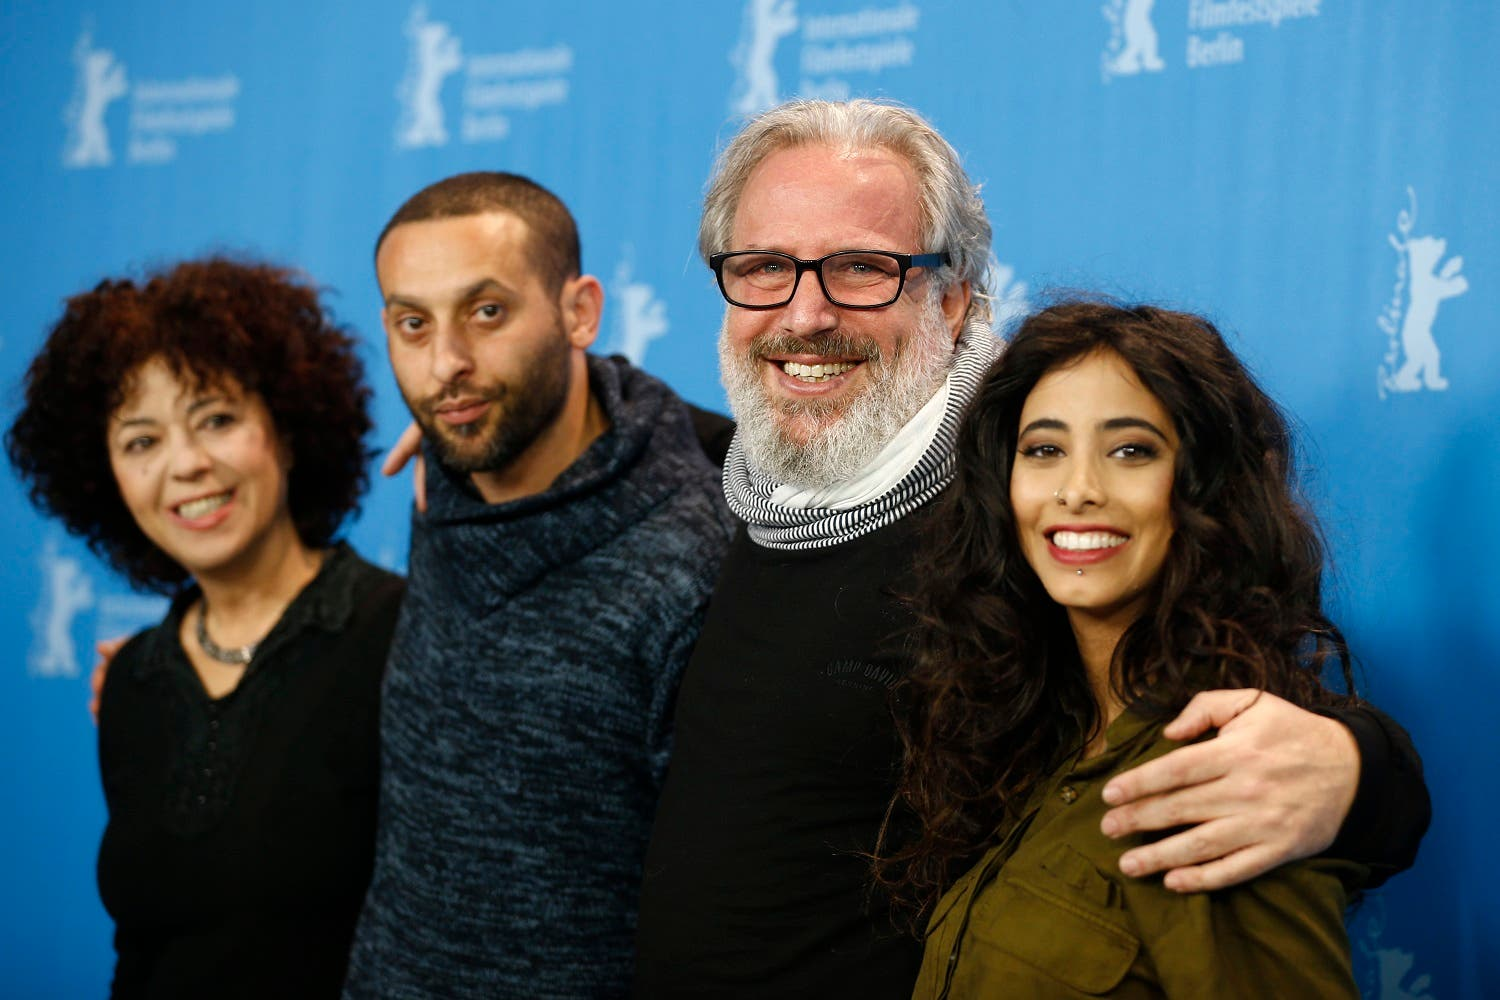 Actress Salwa Sakkara, actor Tamer Nafar, director and producer Udi Aloni and actress Samar Qupty, from left, pose for the photographers during a photo call for the film 'Junction 48' at the 2016 Berlinale Film Festival in Berlin, Germany, Saturday, Feb. 13, 2016. AP